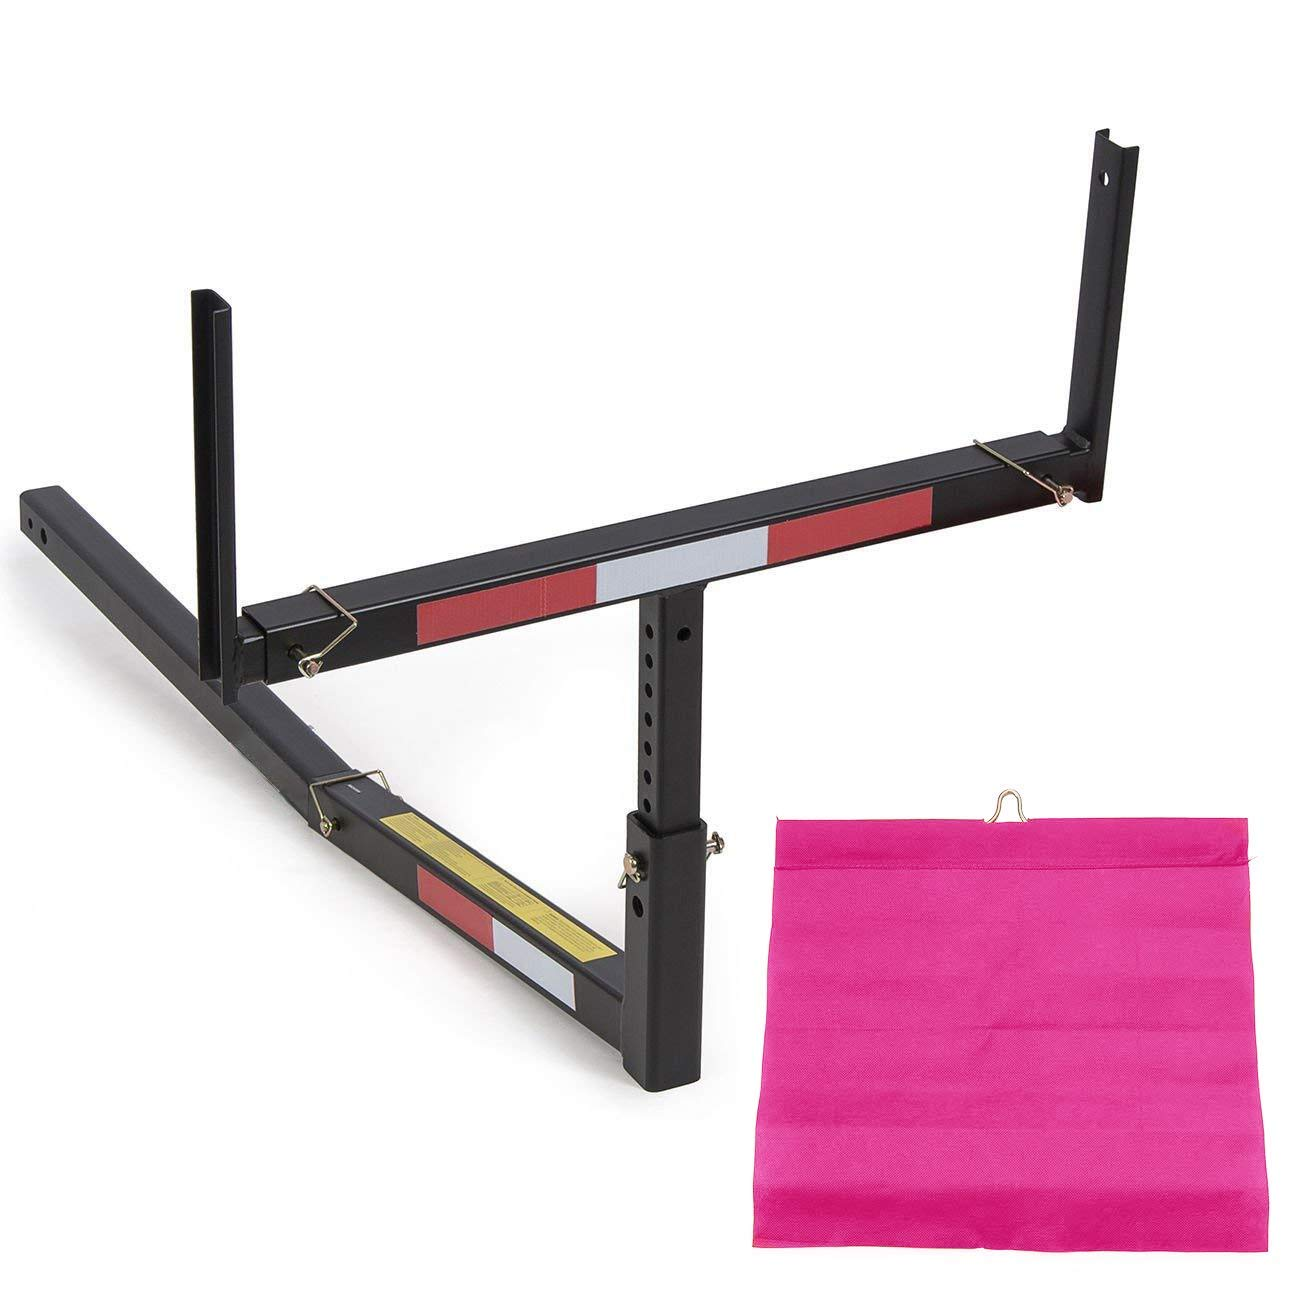 """Jeremywell Adjustable Steel Pick Up Truck Bed Hitch Extender Extension Rack with Flag for Boat Lumber Long Loads Canoe Ladder Fits 2"""" Hitches 750 Lbs Weight Capacity"""